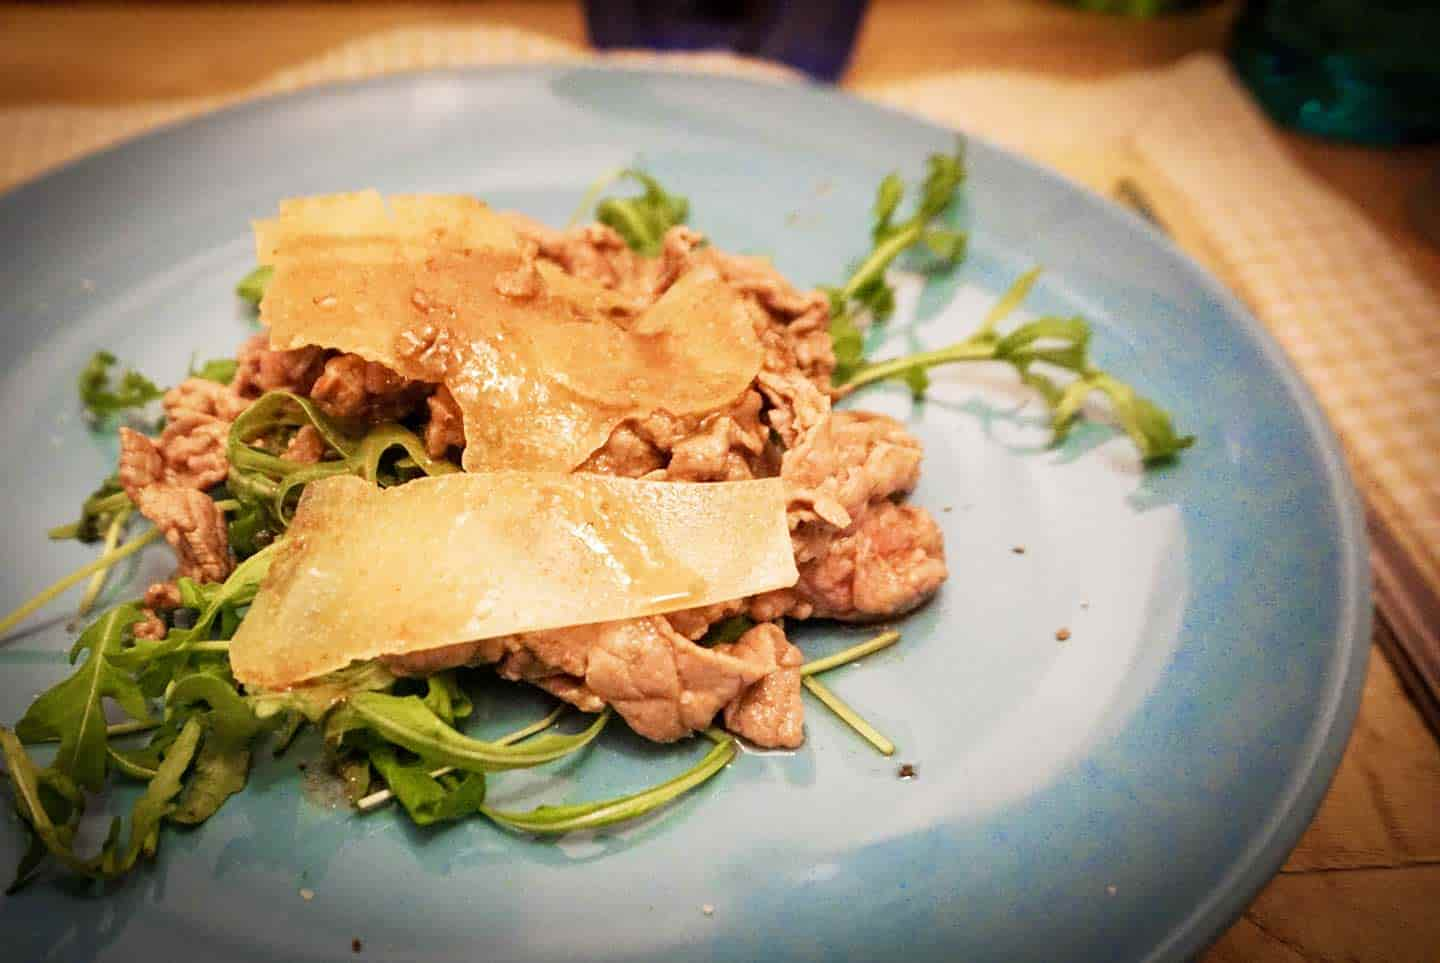 beef stips with rocket salad